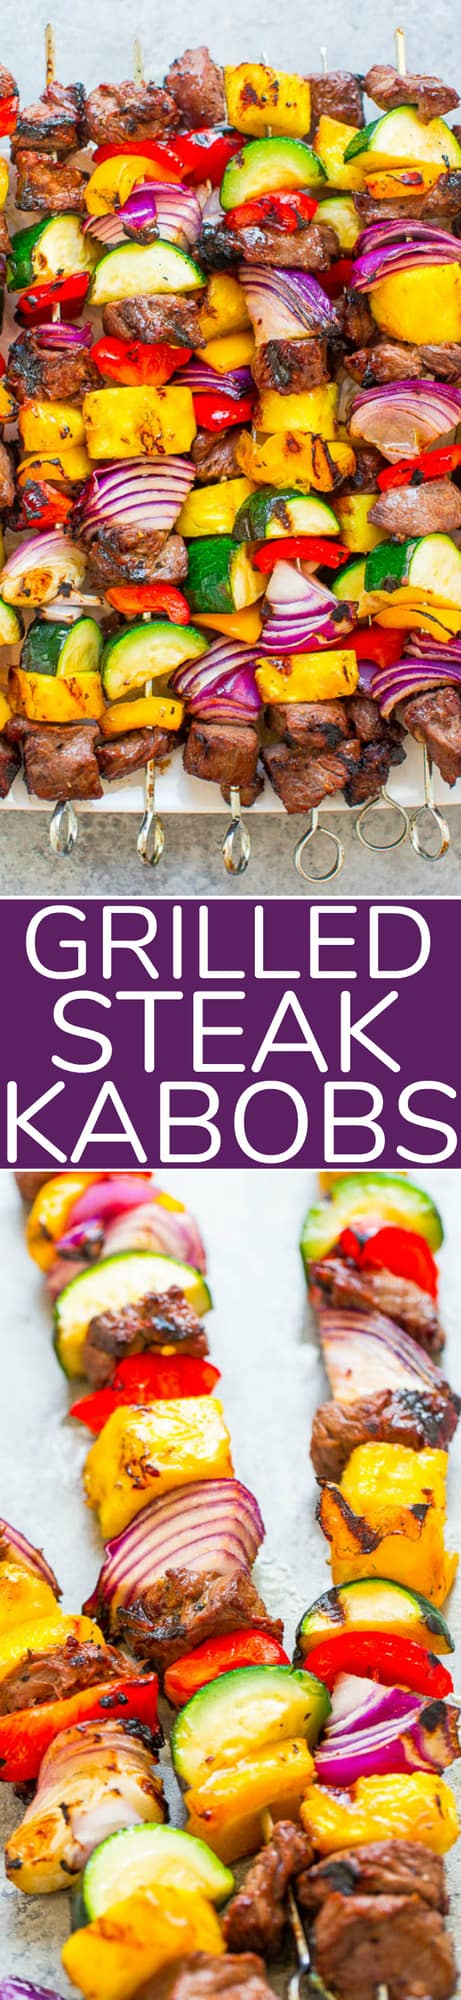 Grilled Steak Kabobs - Juicy steak with sweet bell peppers, onions, zucchini, and pineapple for the PERFECT sweet-and-savory kabob!! You'll want to fire up your grill for these! Fast, EASY, zero cleanup, and DELISH!!